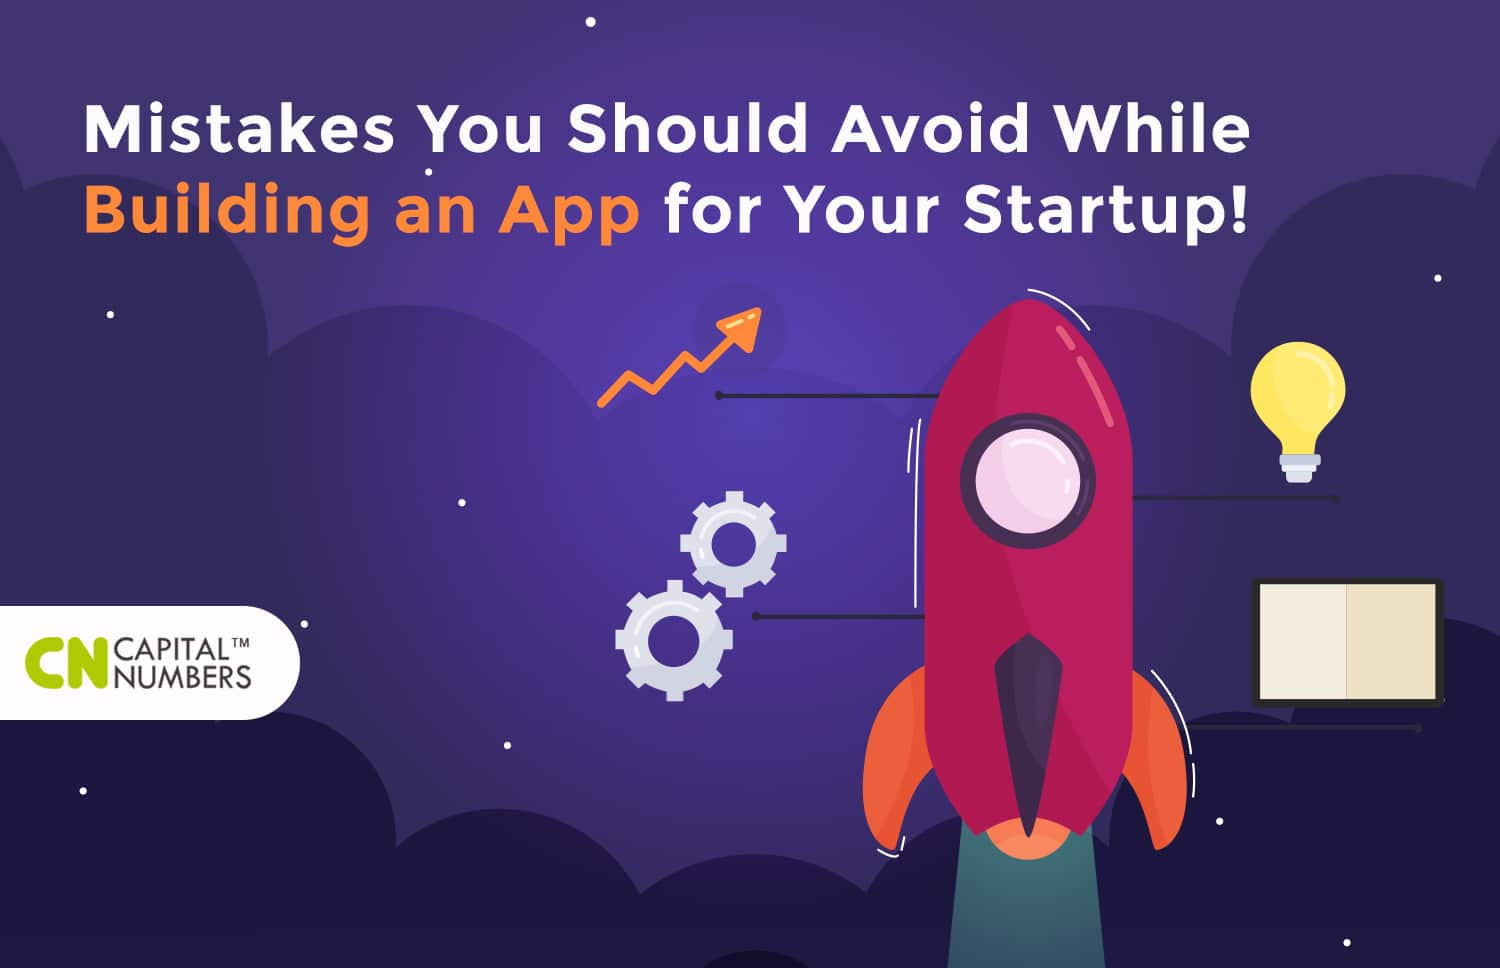 8 Mistakes You Should Avoid While Building an App for Your Startup